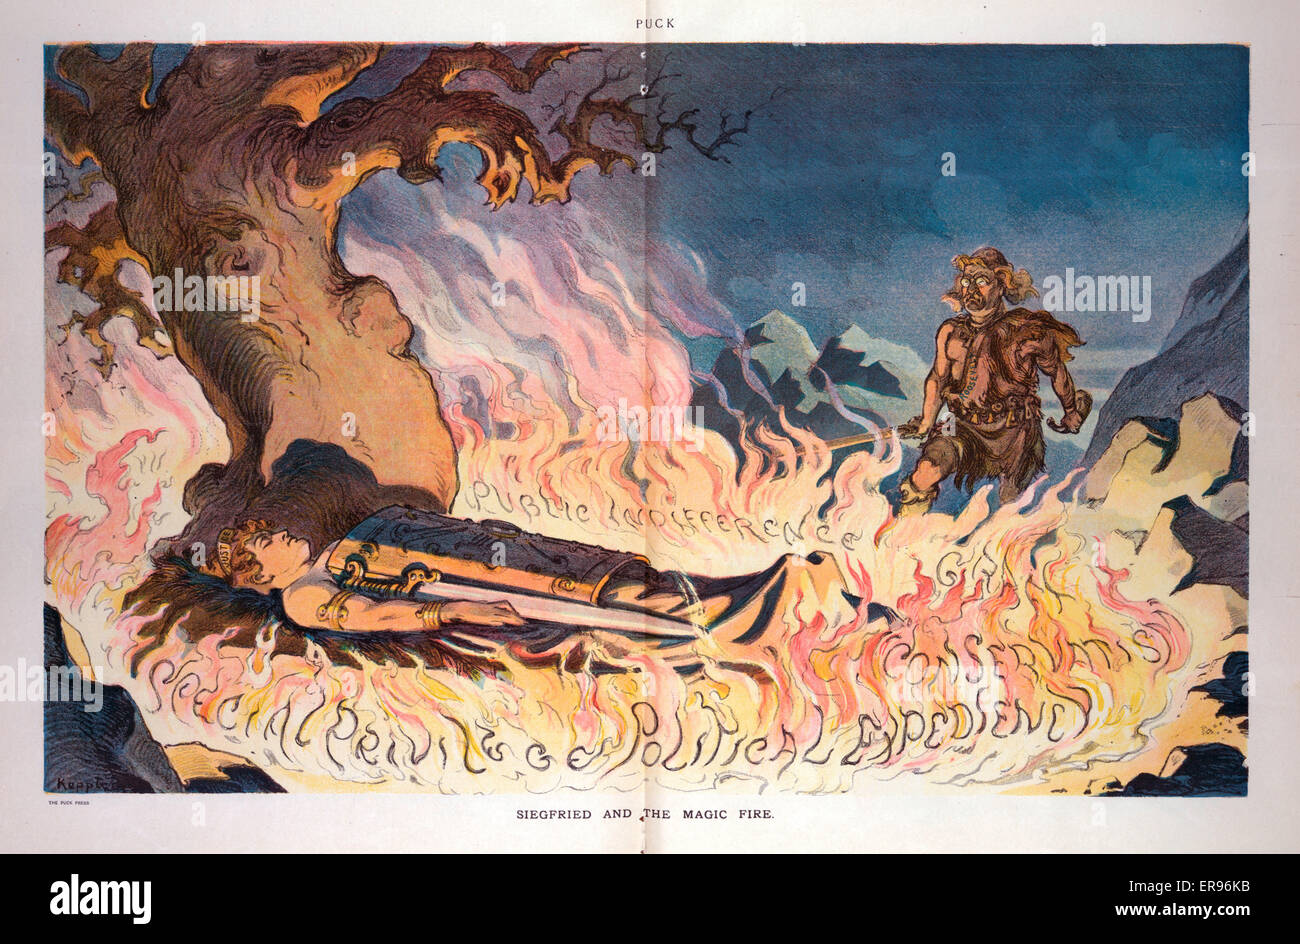 Siegfried and the magic fire. Illustration shows Theodore Roosevelt as Siegfried standing at the edge of a ring - Stock Image